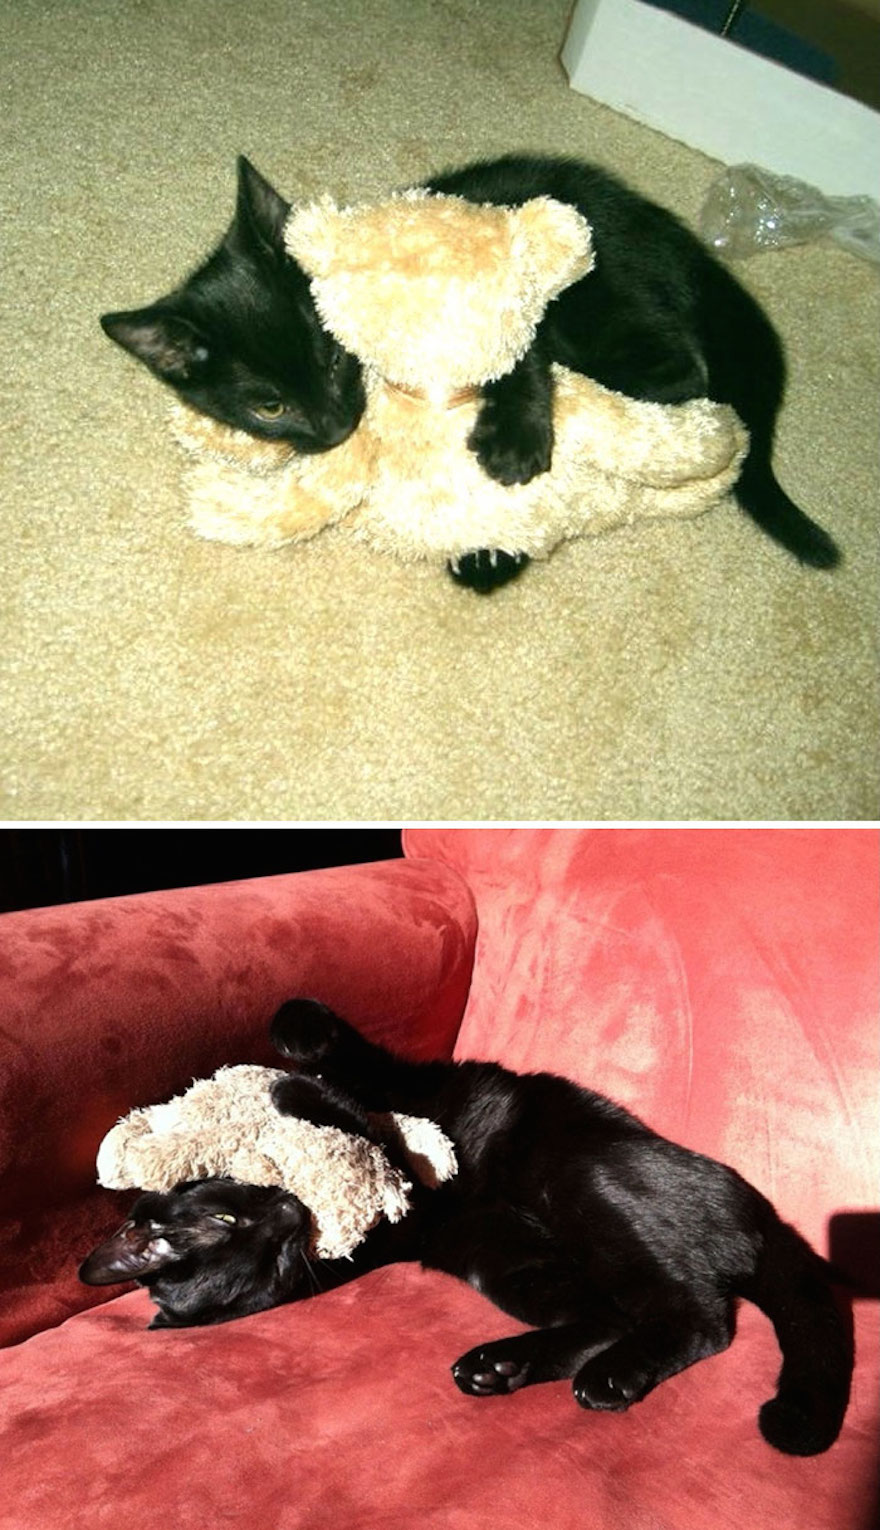 He's addicted to his teddy bear